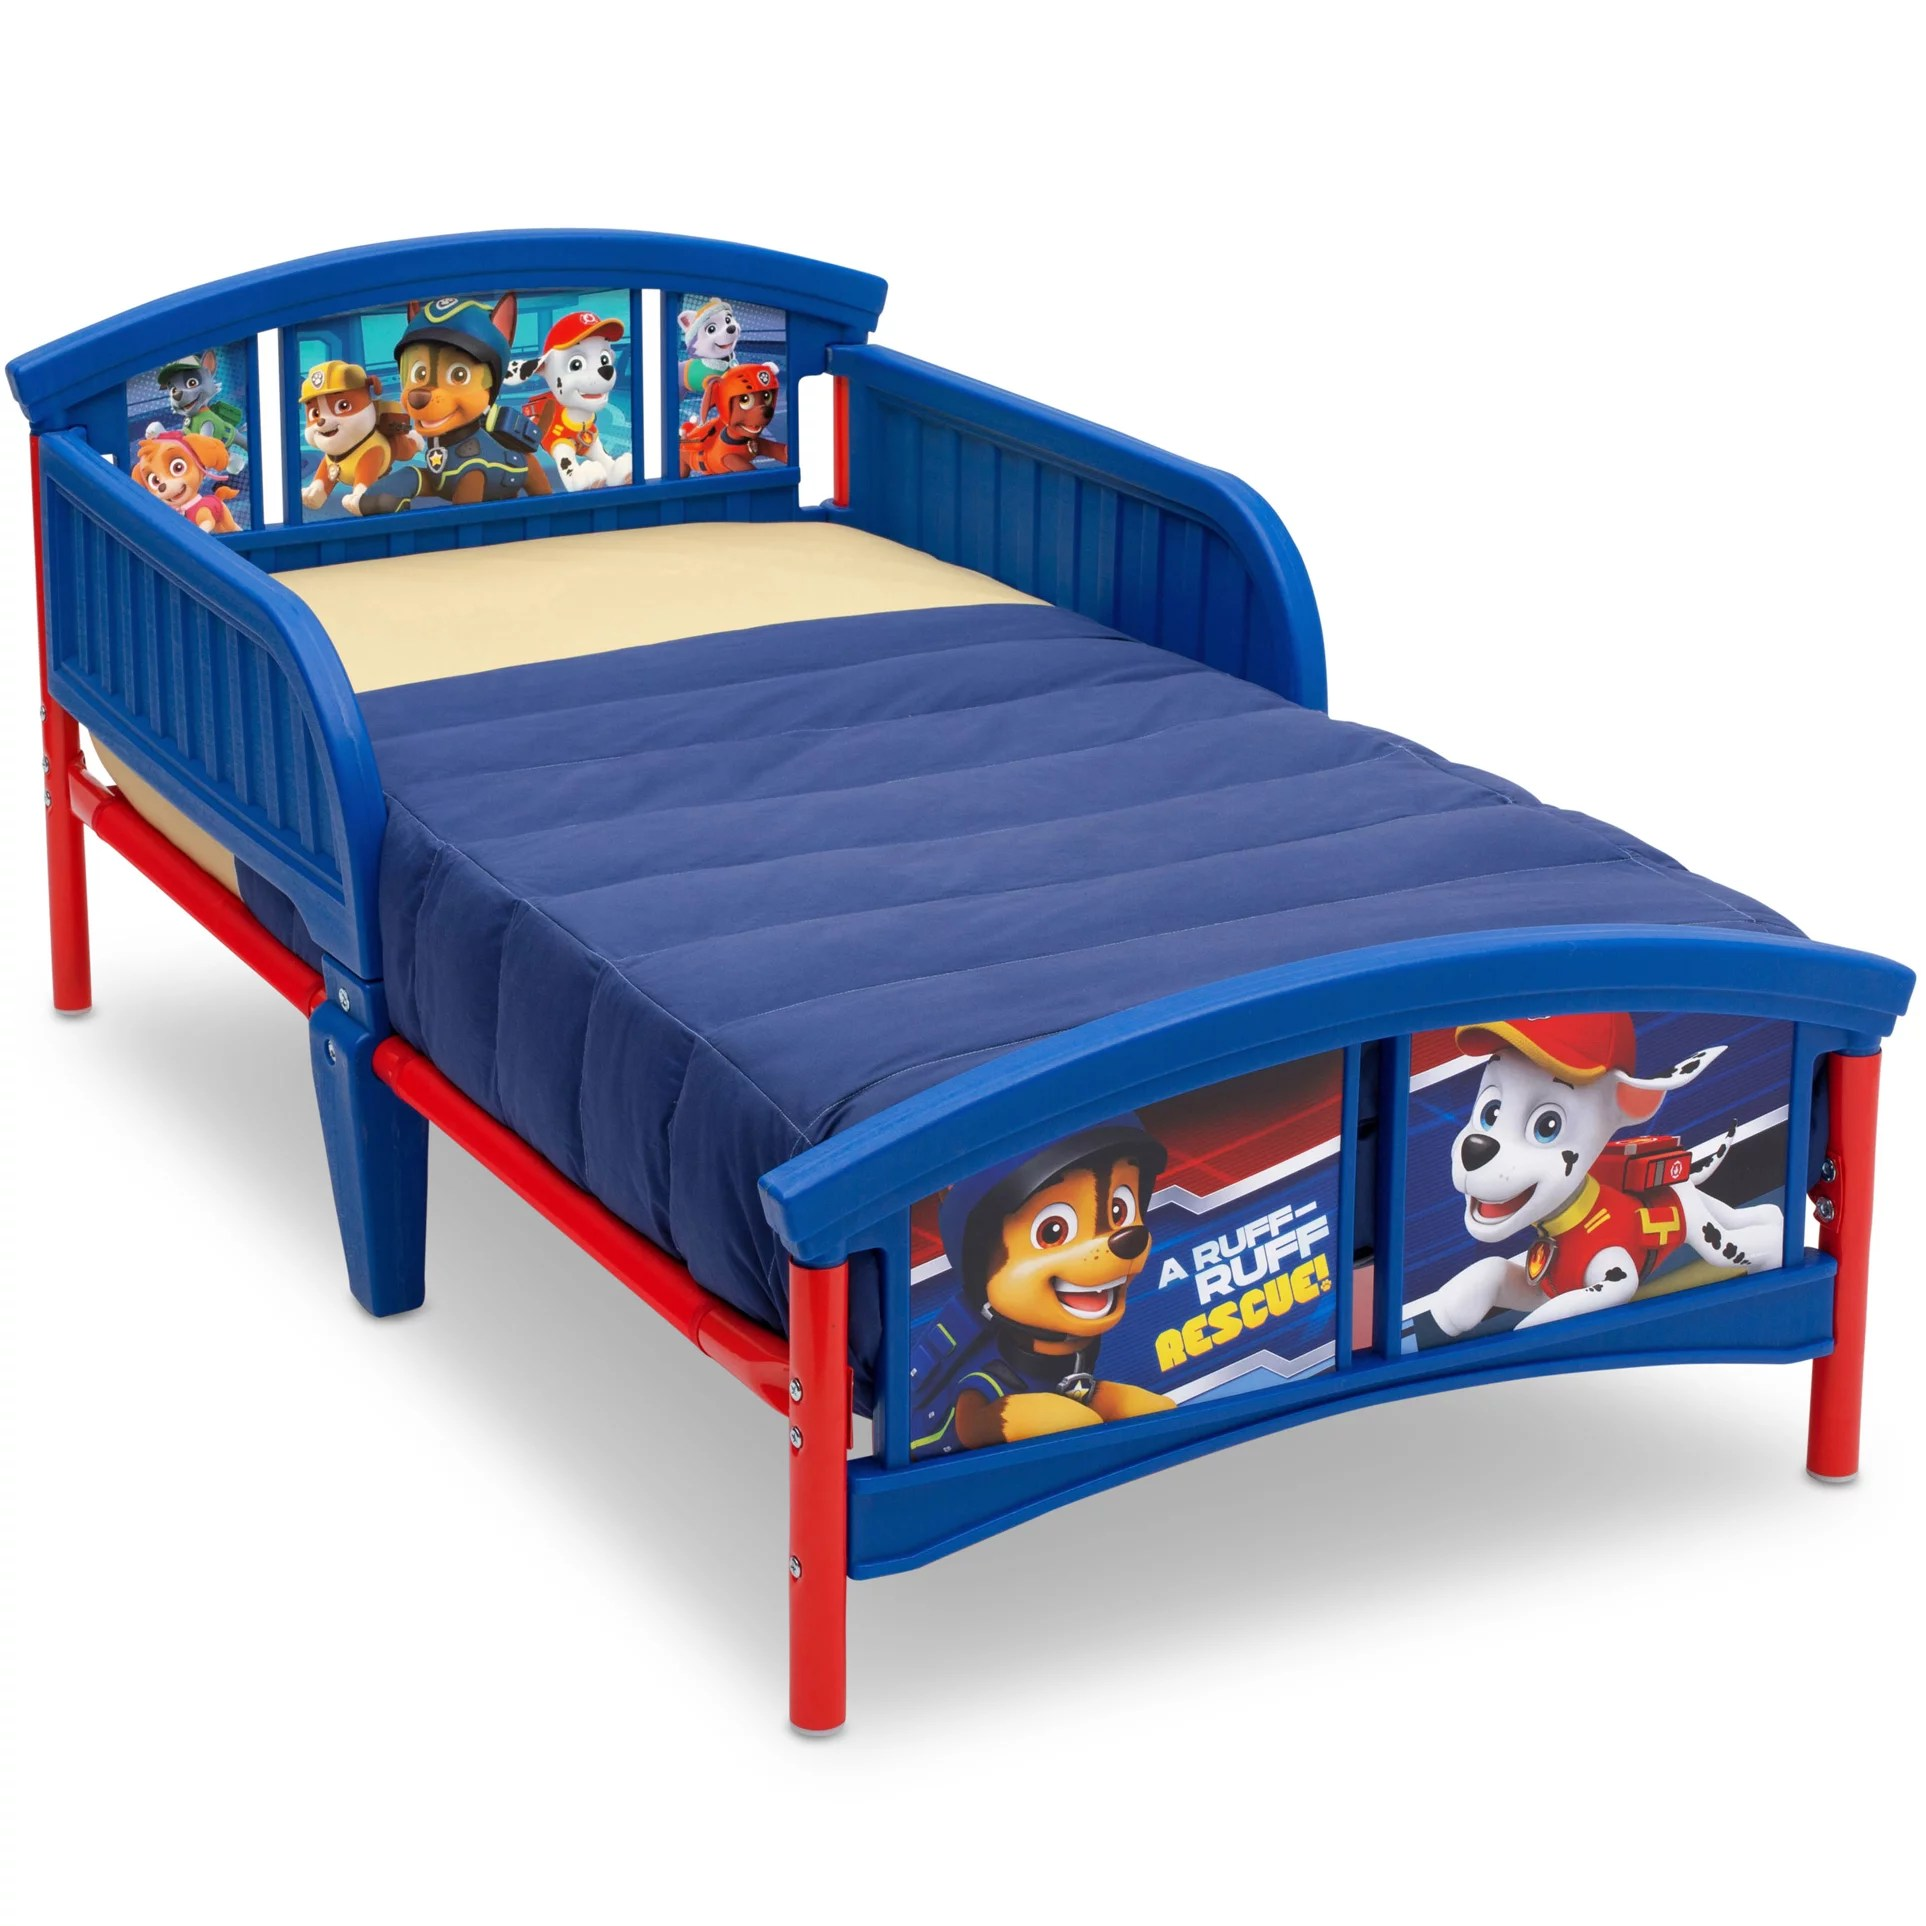 Cheap Toddler Beds Delta Children Nick Jr Paw Patrol Plastic Toddler Bed Blue